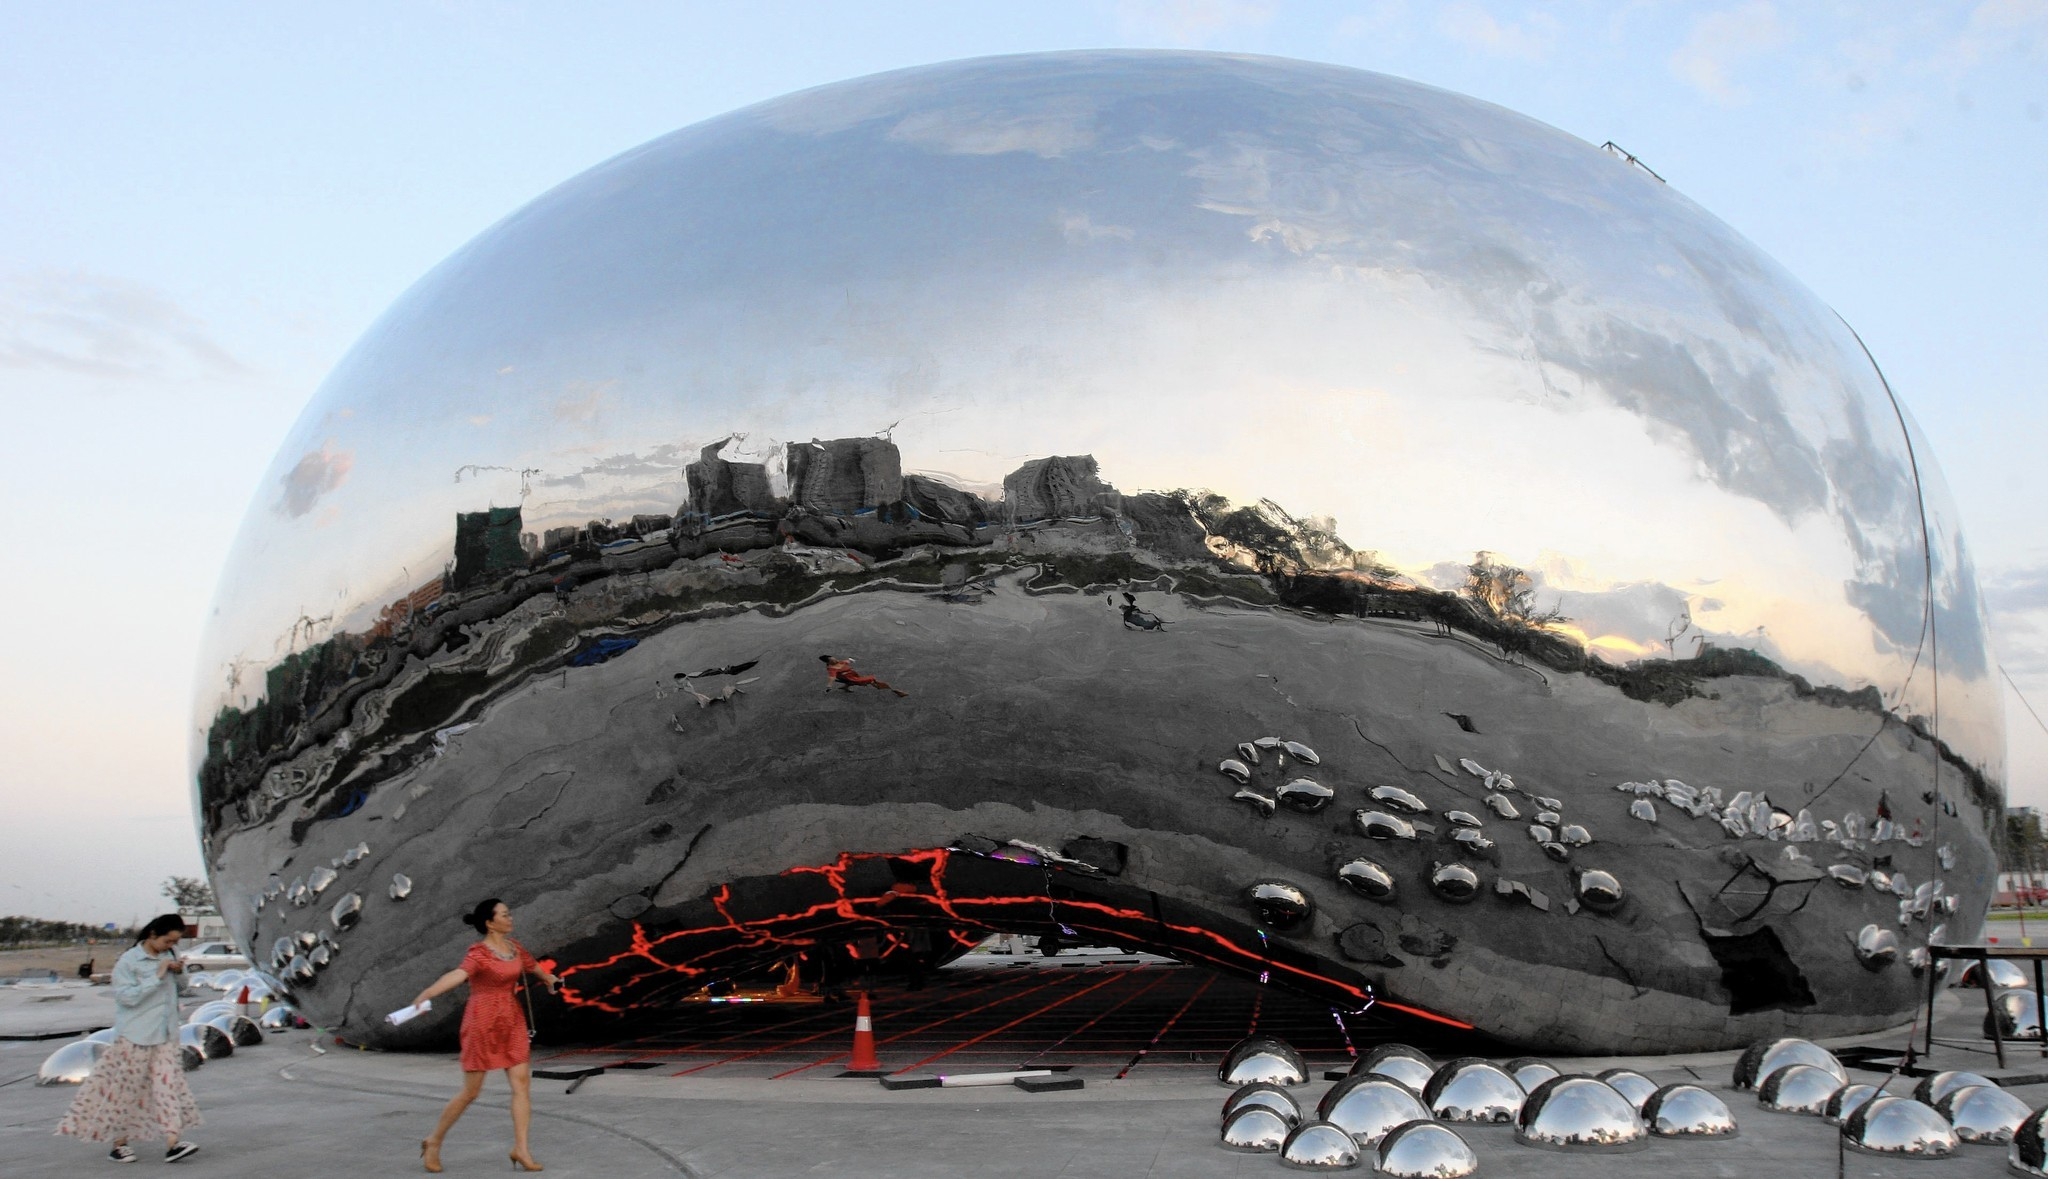 cloudgate chicago s beloved sculpture is victim of a scandal